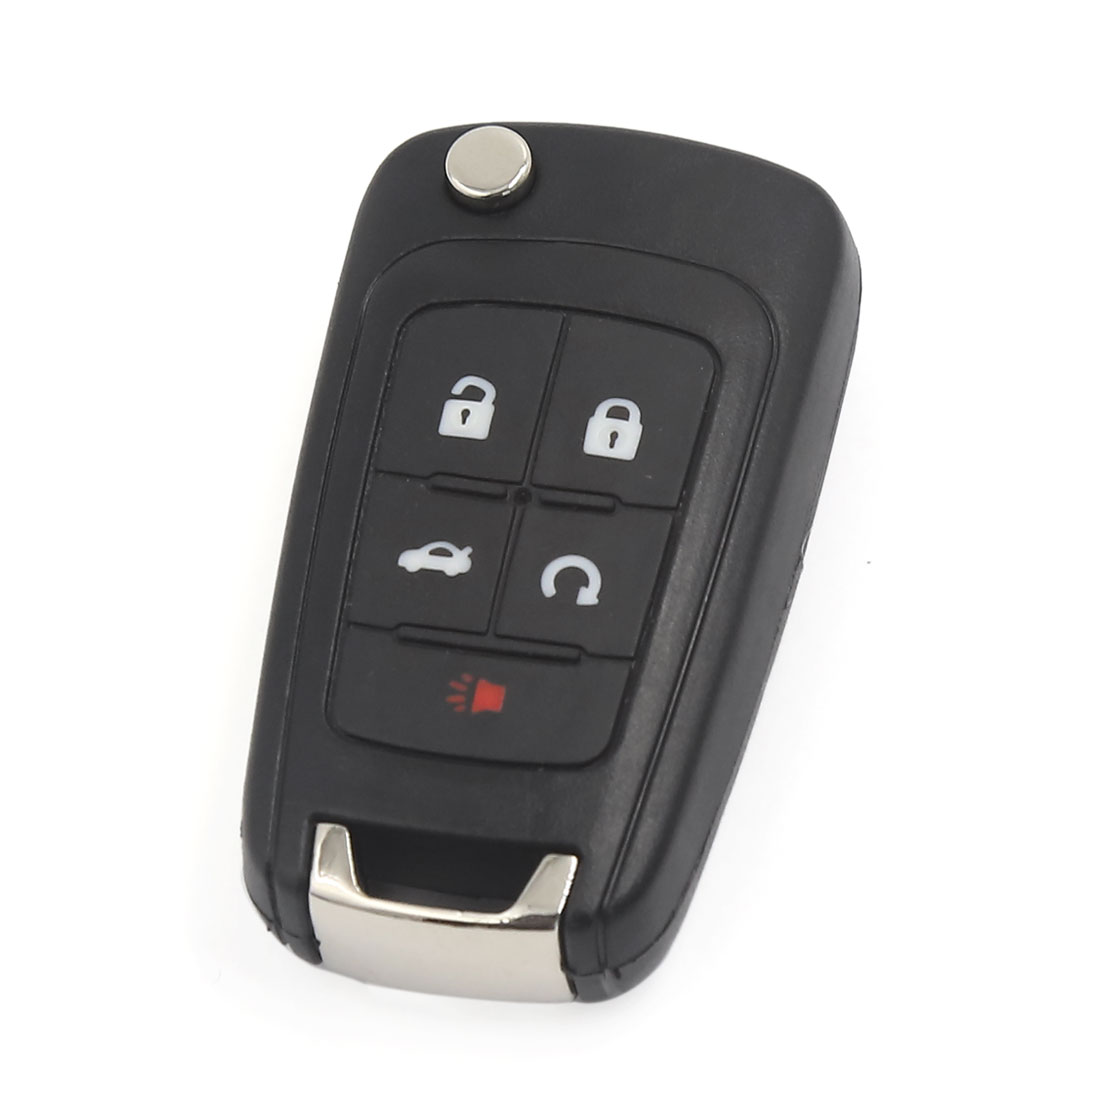 New Replacement Light Keyless Entry Car Remote Key Fob for GMC OHT01060512